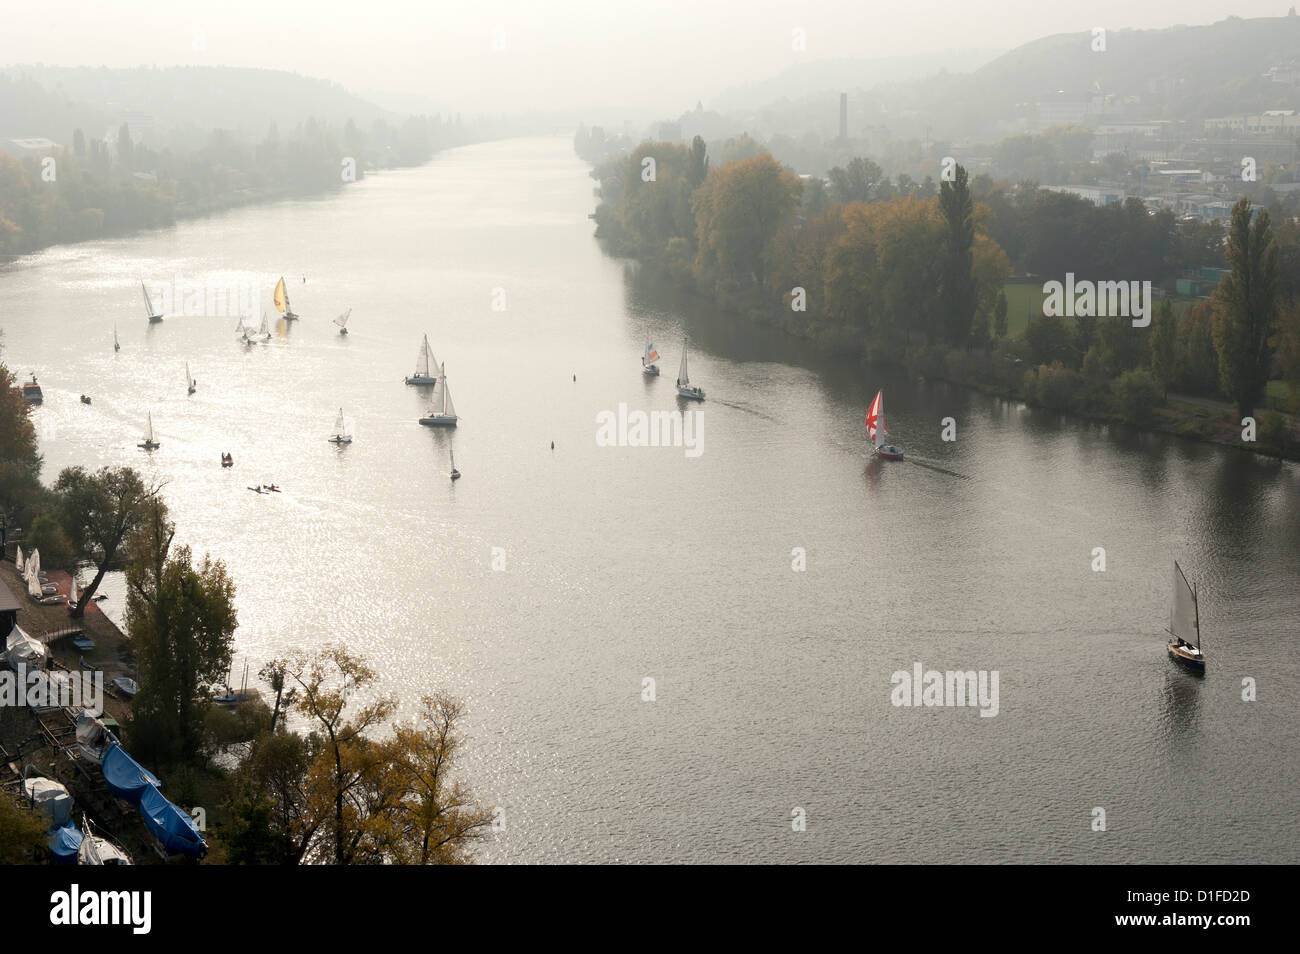 Sail boats on Vltava River in autumn, Vysehrad, Prague, Czech Republic, Europe Stock Photo